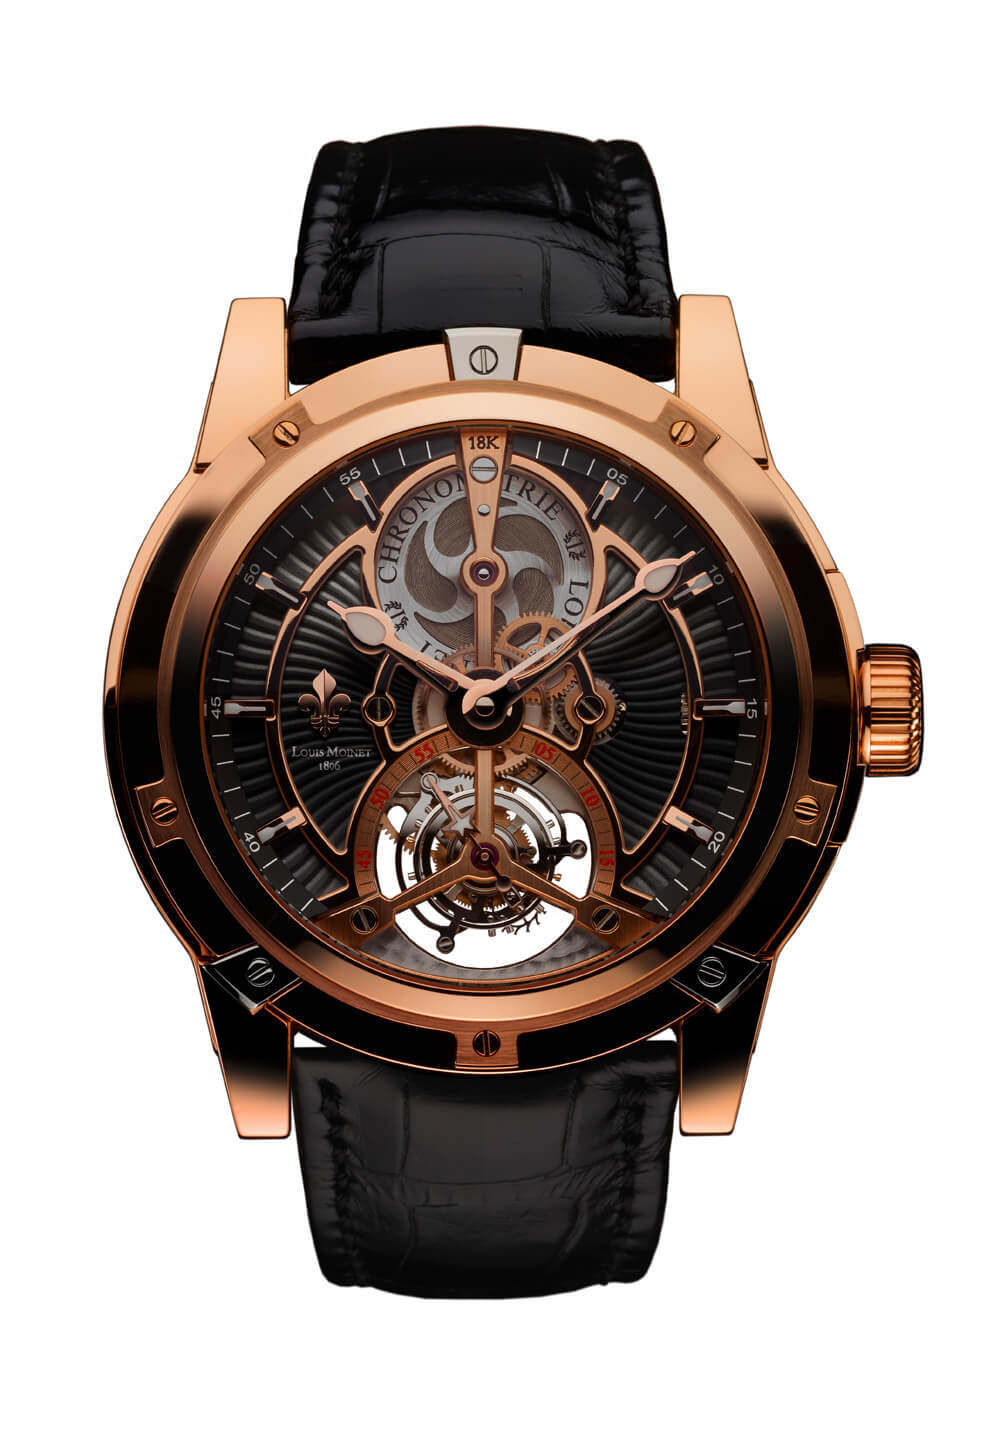 Louis Moinet Vertalor Tourbillon - rose gold complicated timepiece